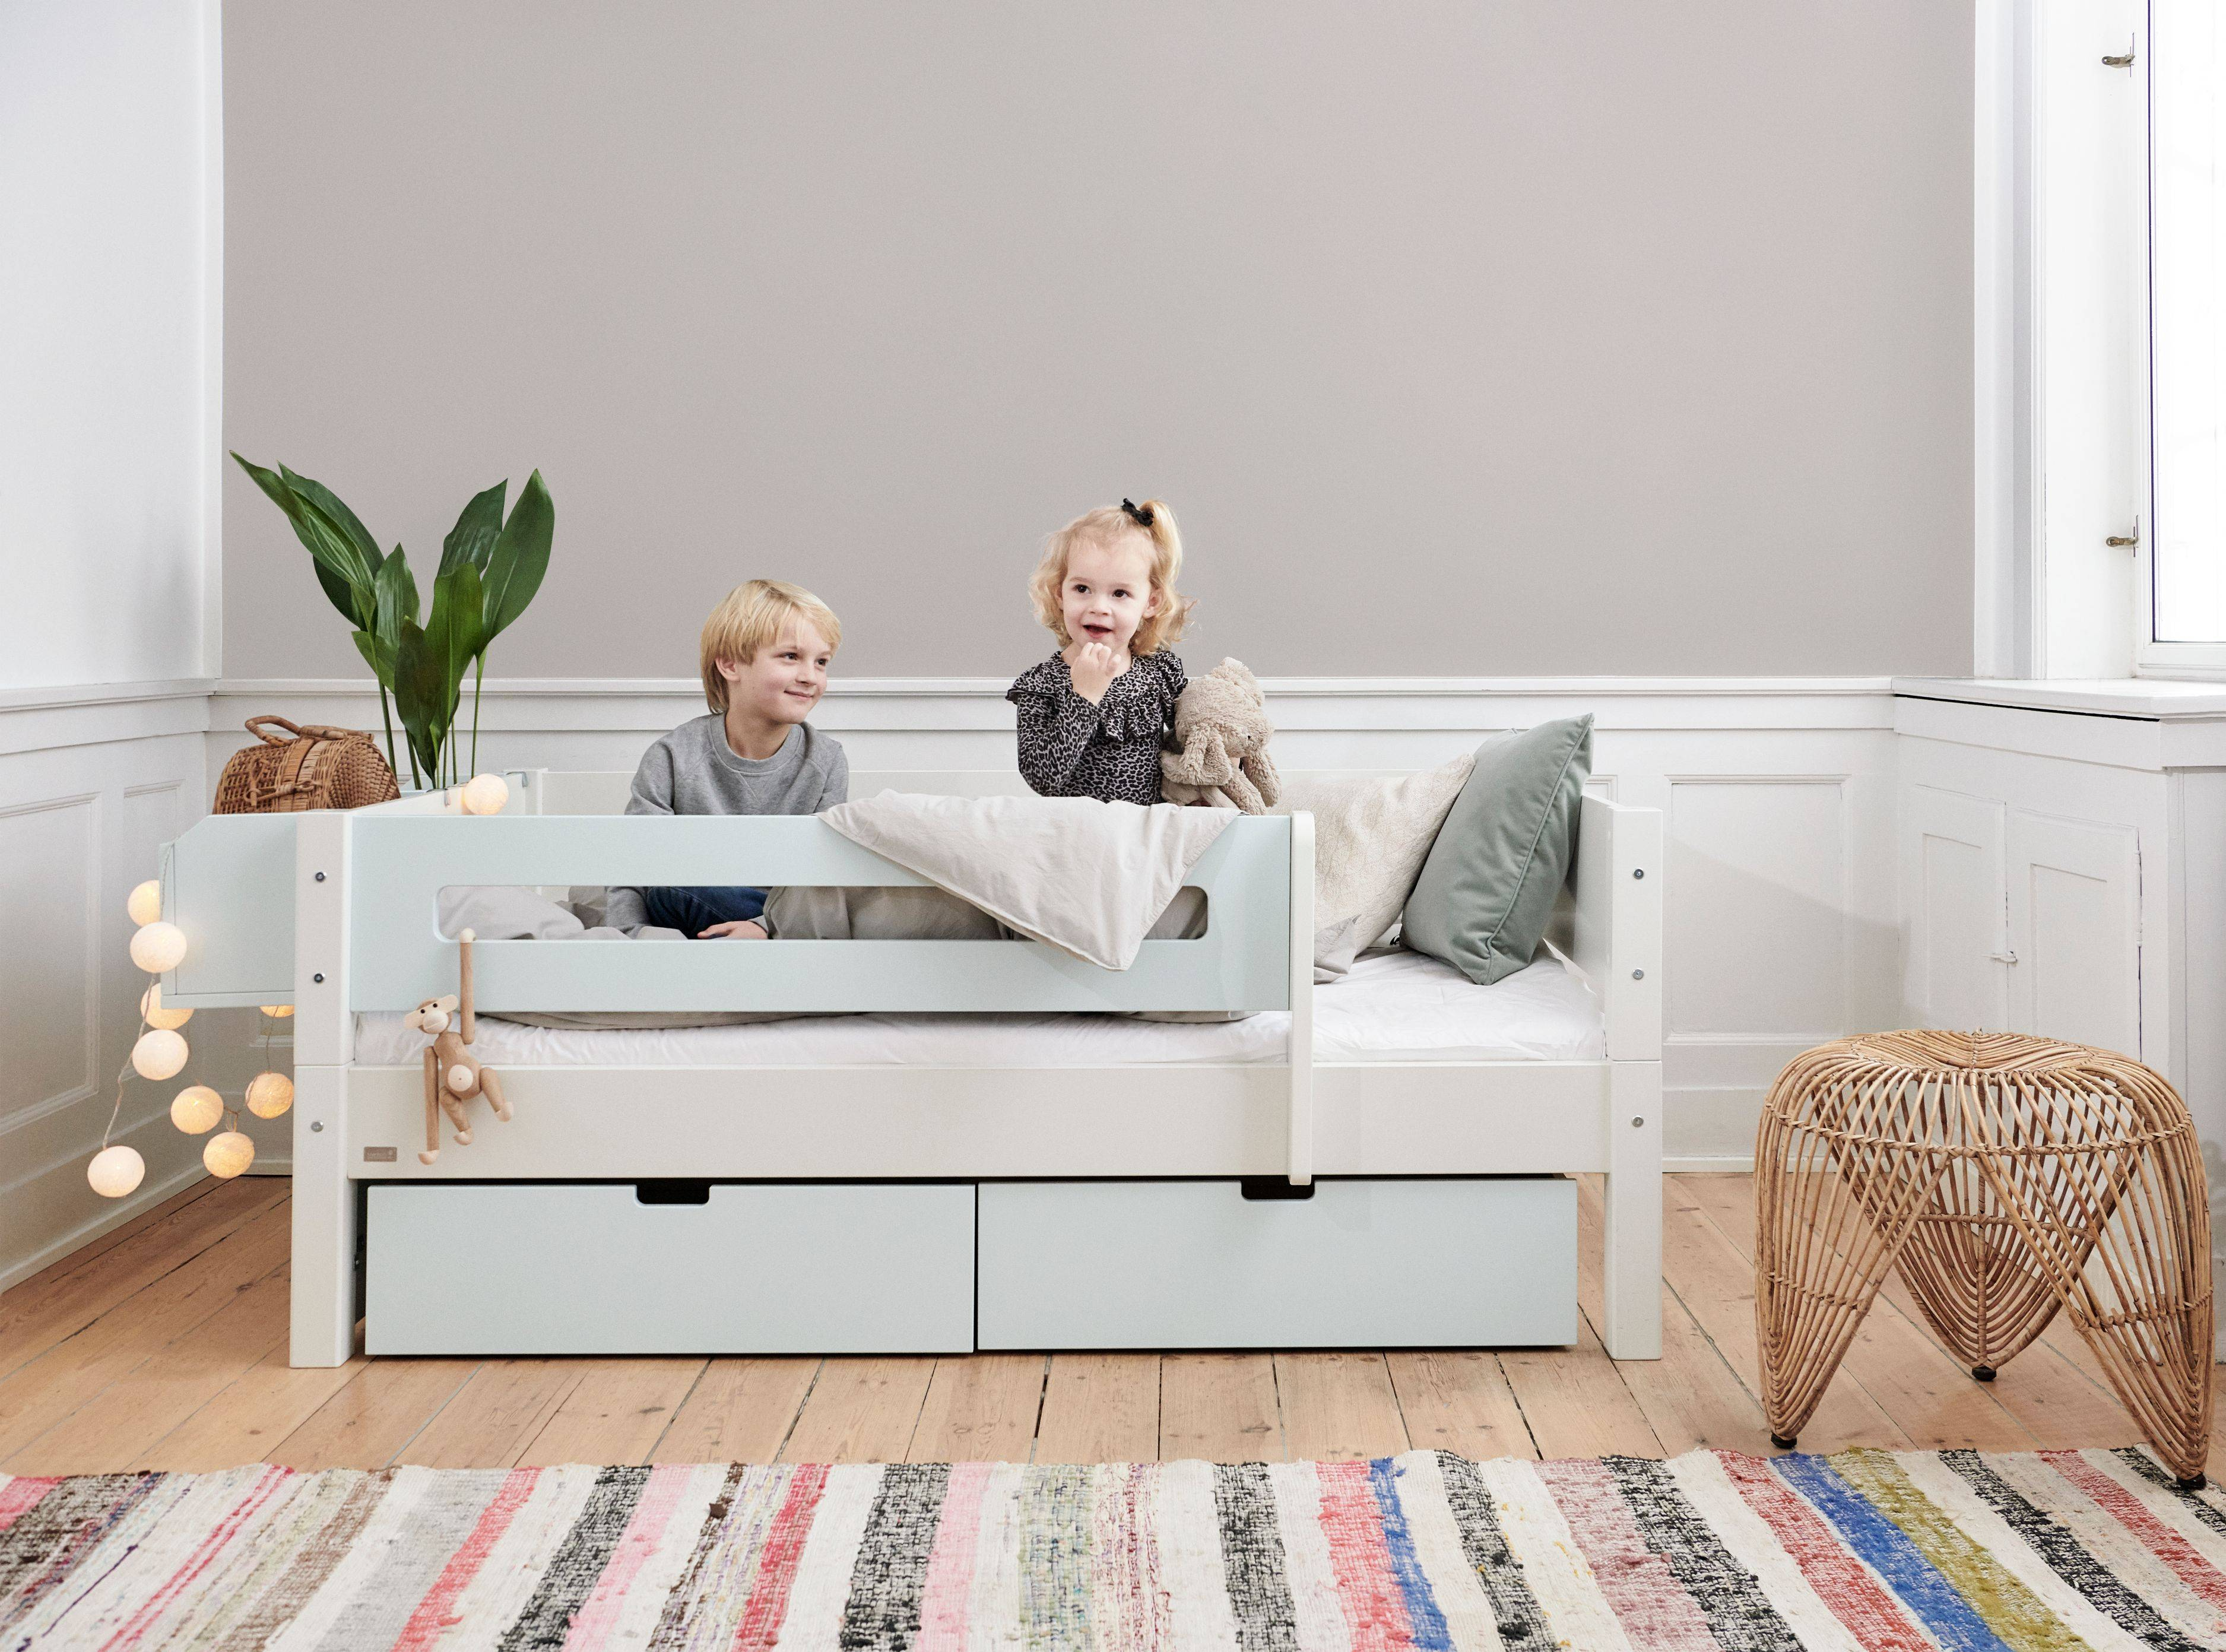 Manis-h MIMER Children's bed with drawers